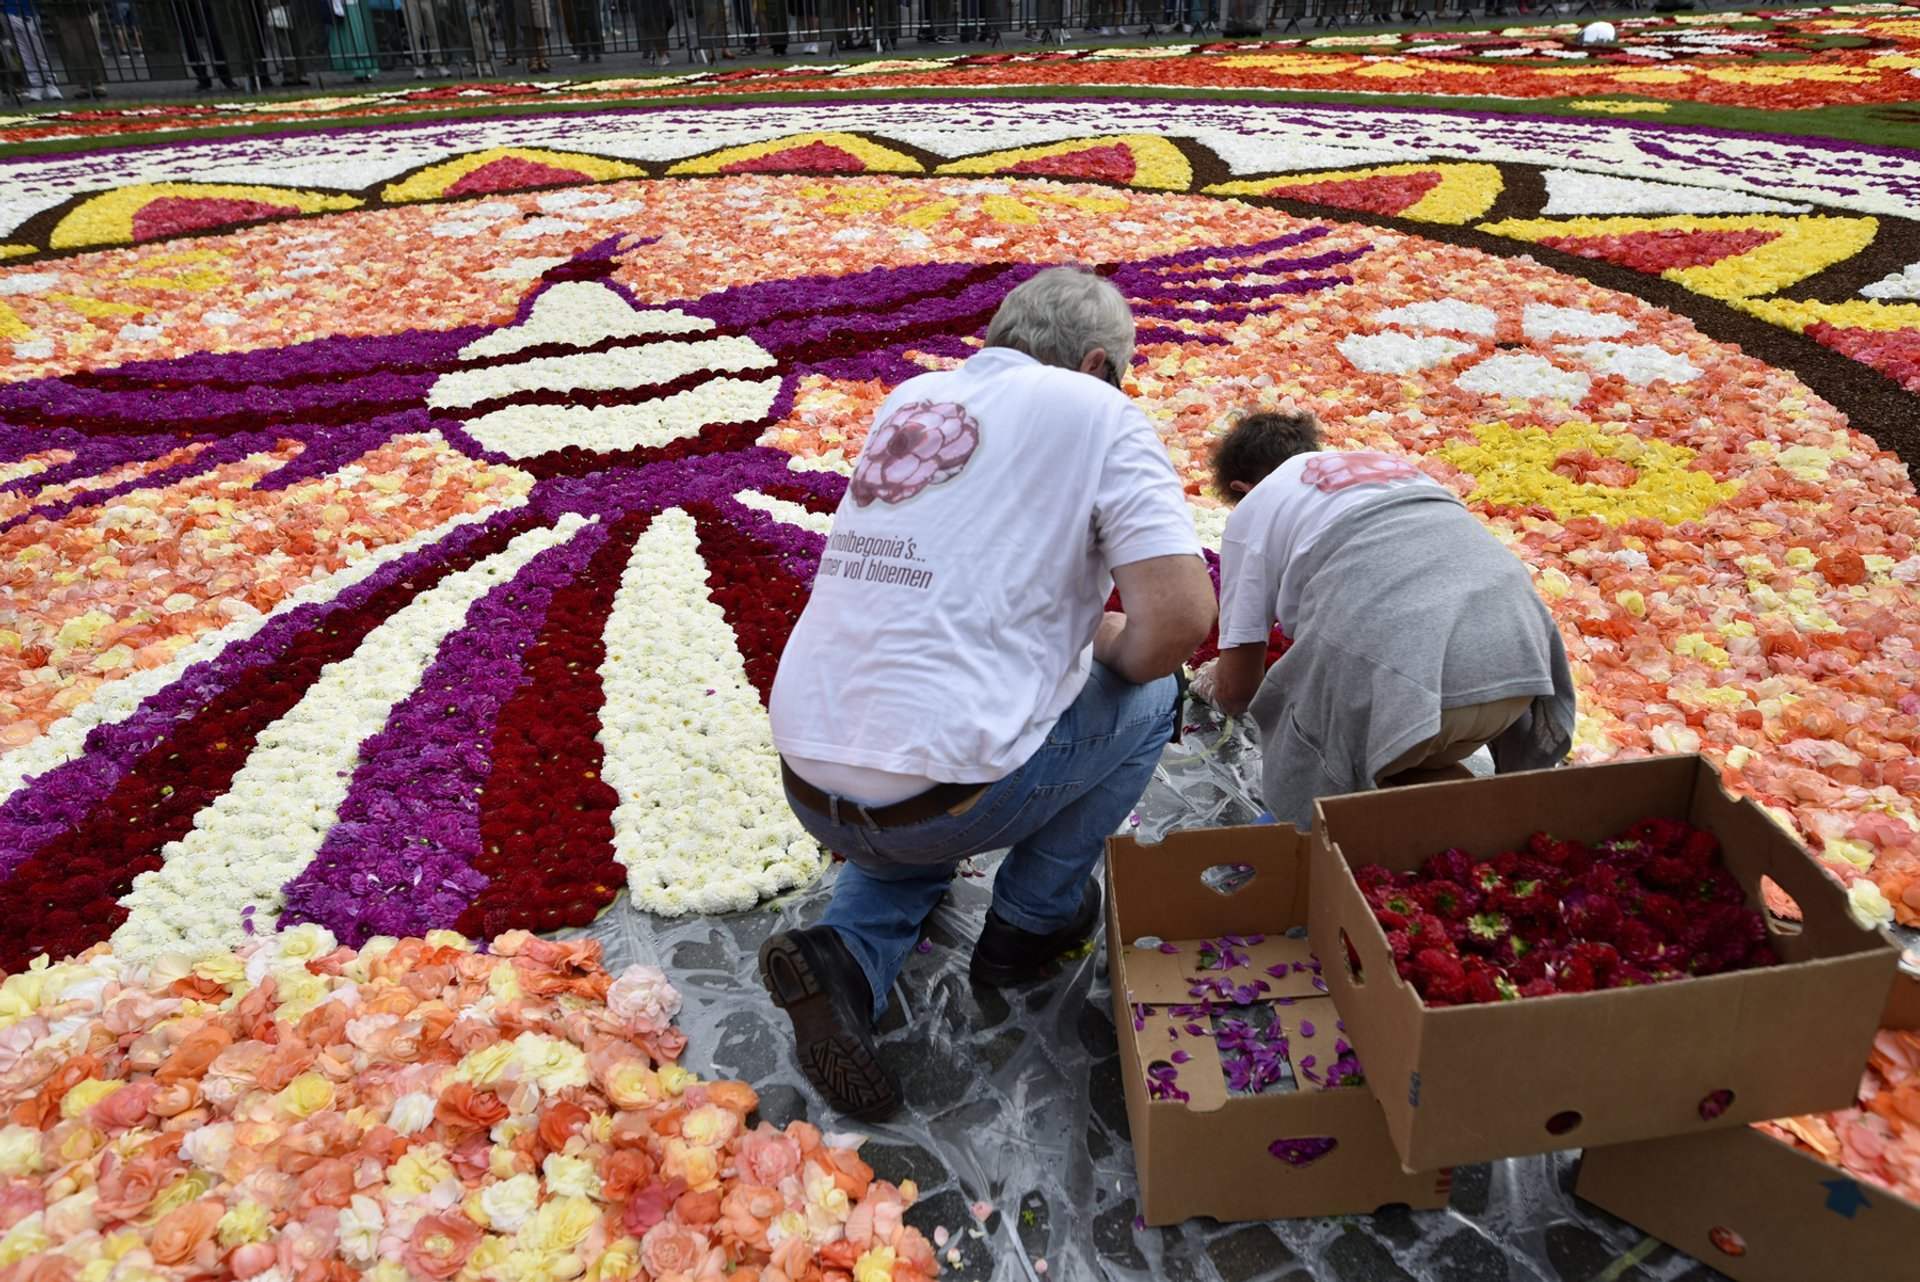 Best time to see Flower Carpet & Flowertime in Brussels 2020